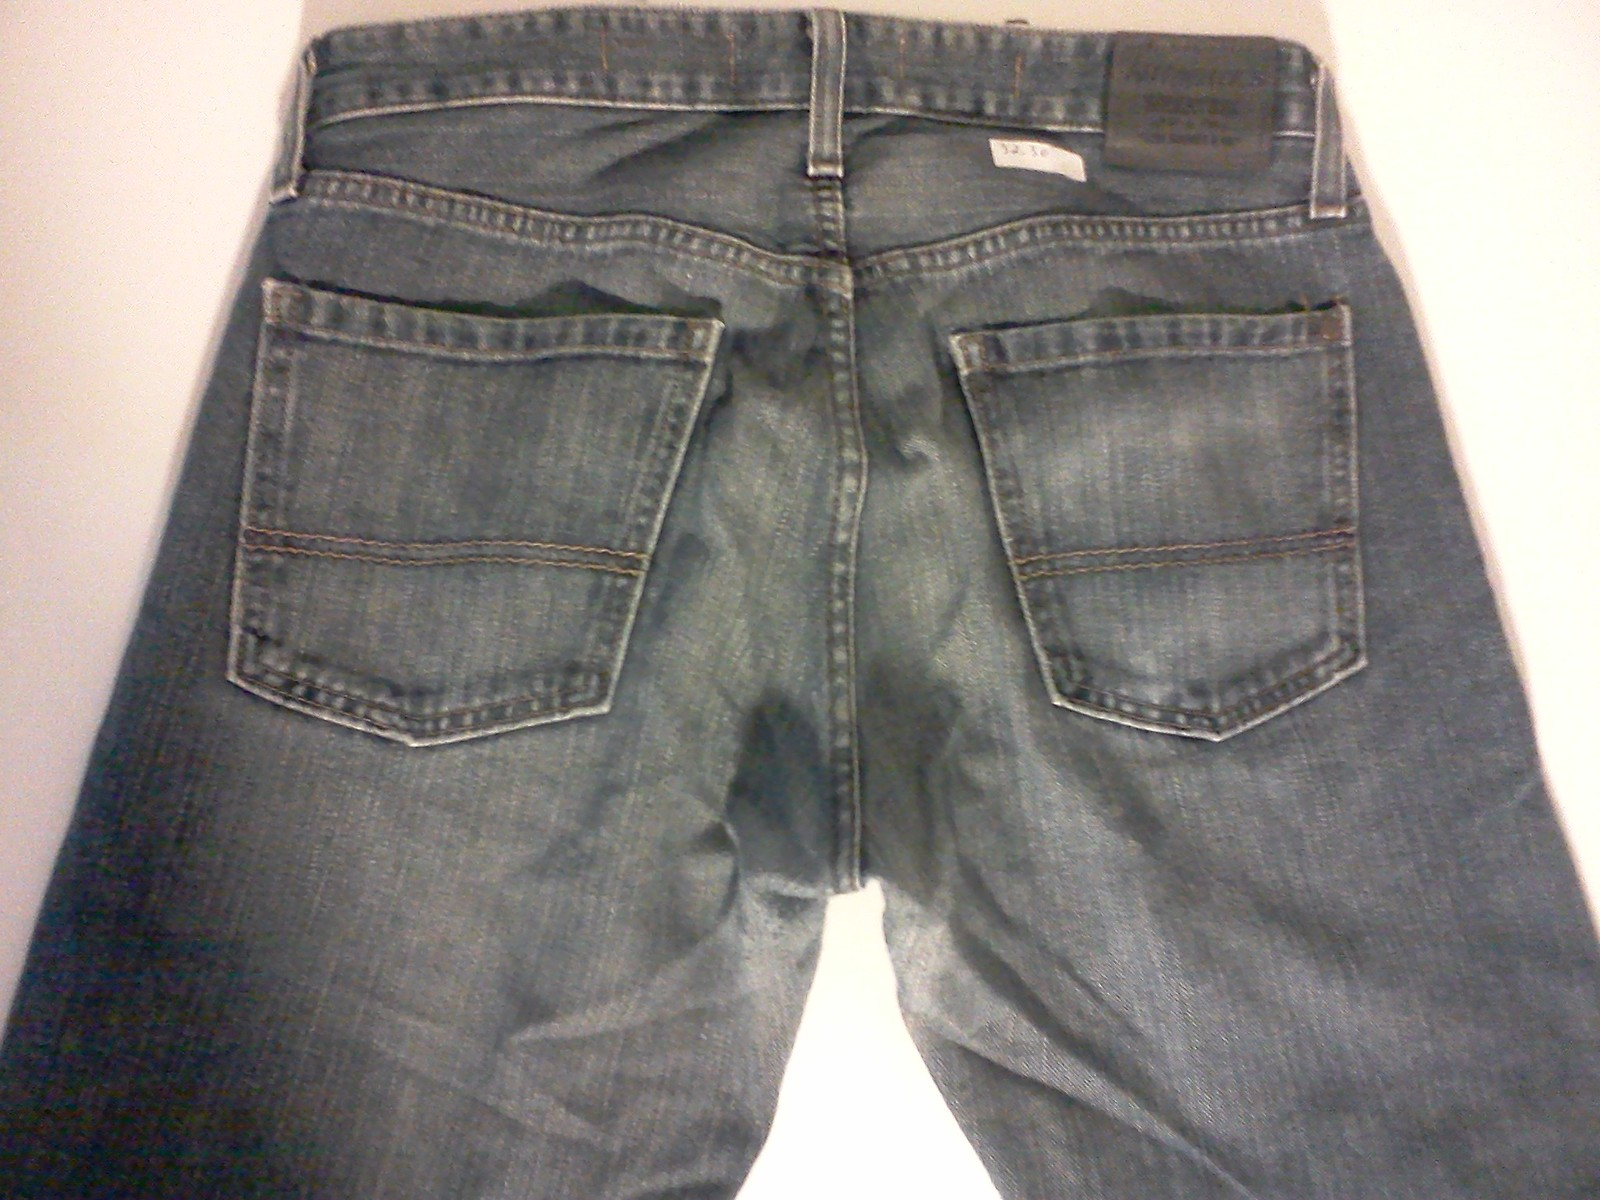 Primary image for Authentics Signature Levi Strauss 32 x 30 slim